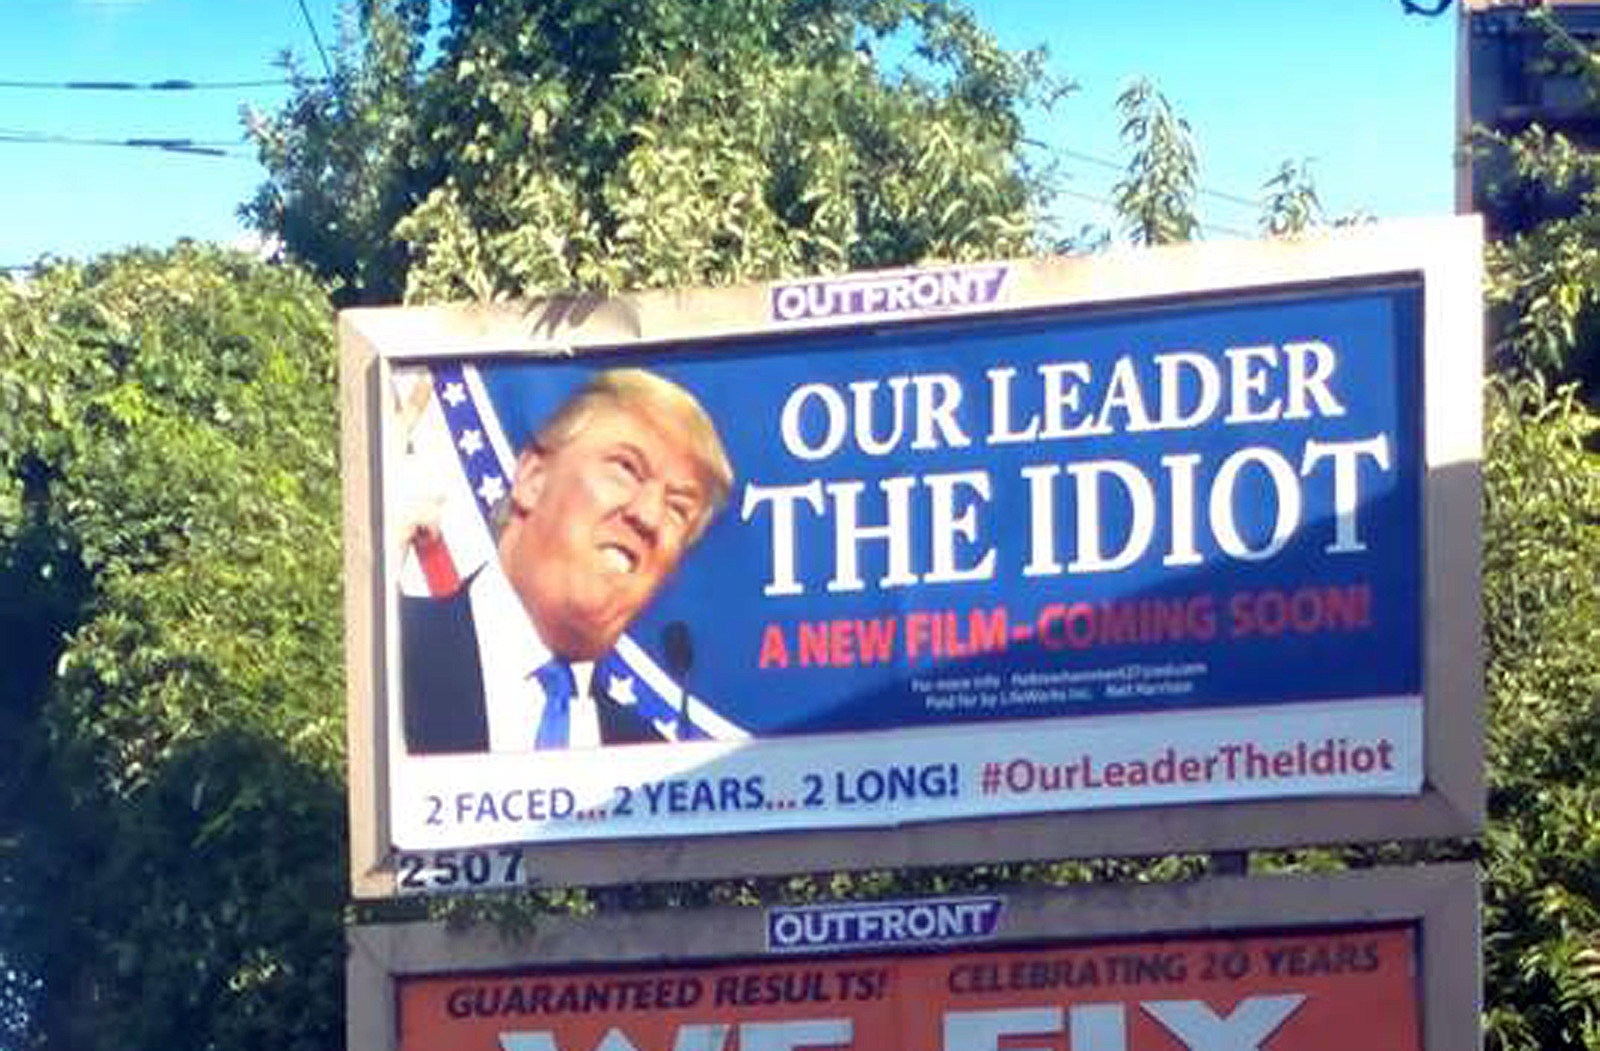 A billboard for an upcoming movie about Donald Trump on Route 22 in Union Township